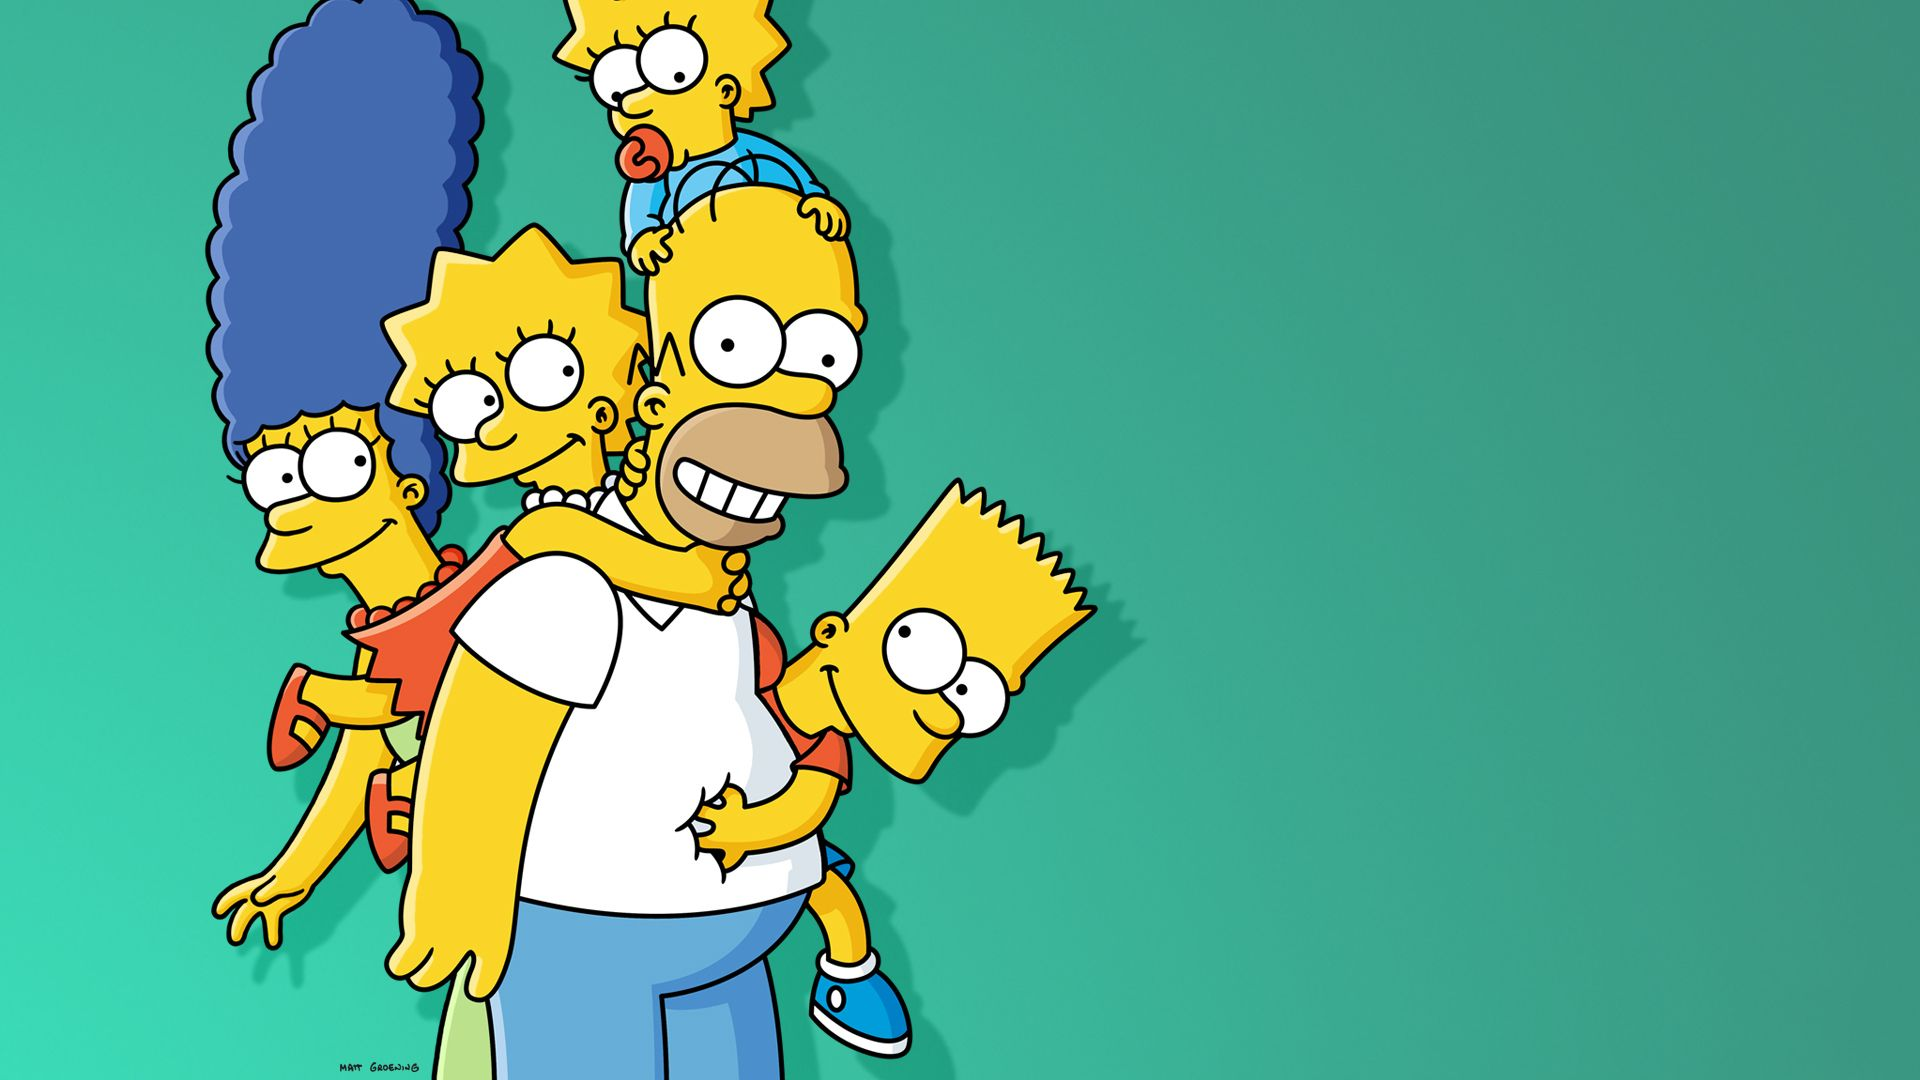 Download Wallpaper The Simpsons, The Simpsons, Homer Simpson, It In The Resolution